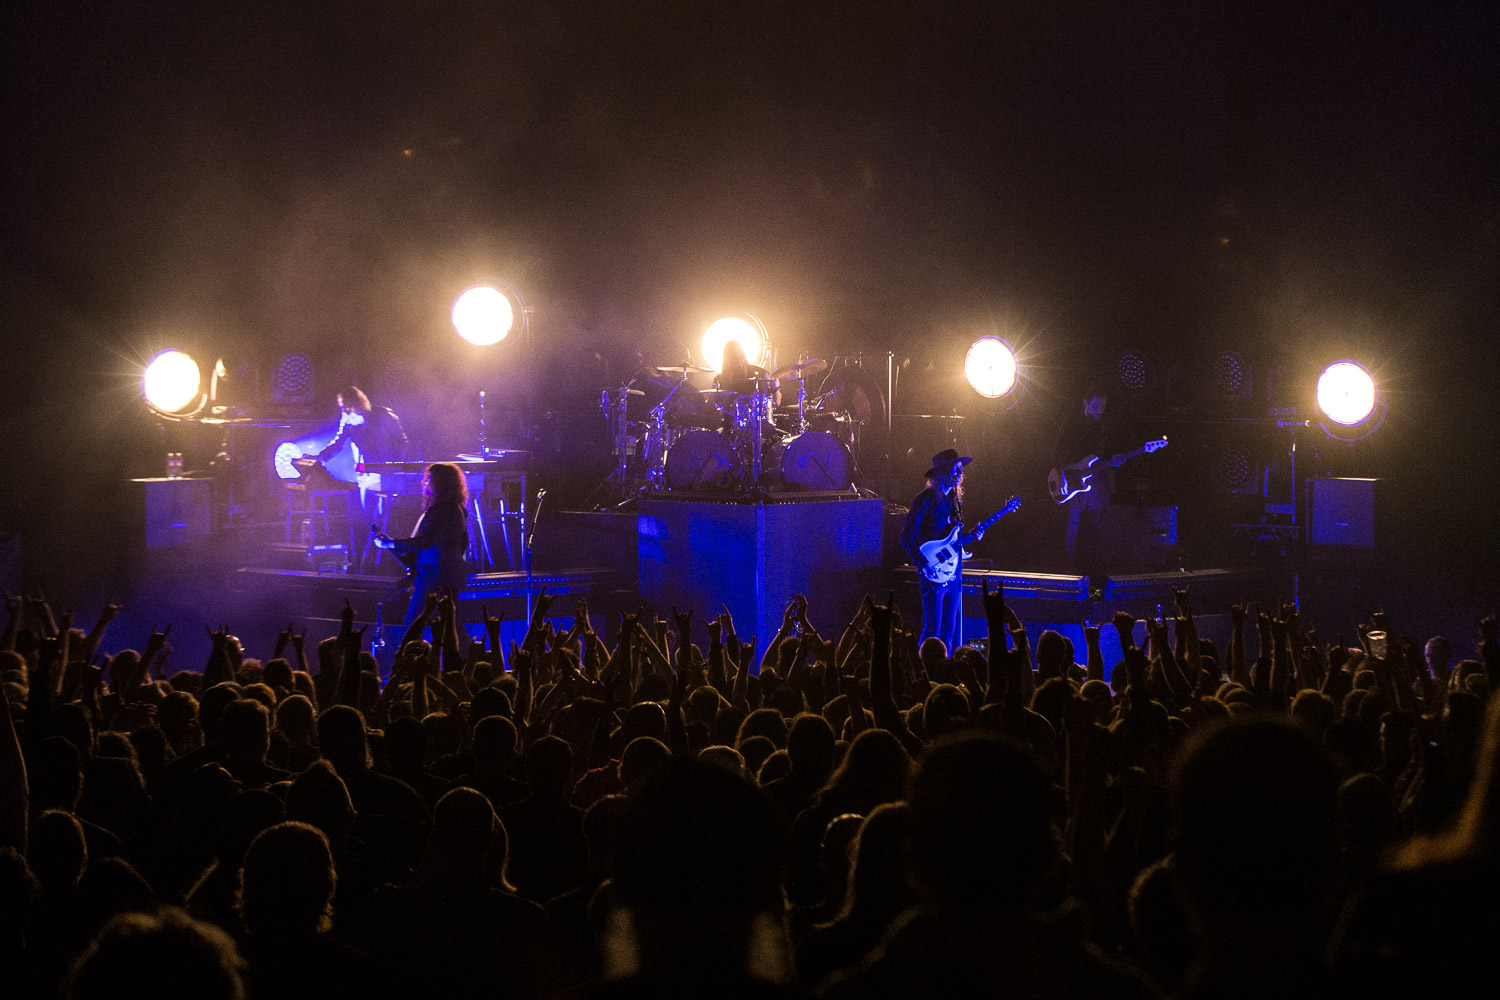 Opeth performing at the Arvest Bank Theatre at The Midland in Kansas City, MO on March 1, 2020